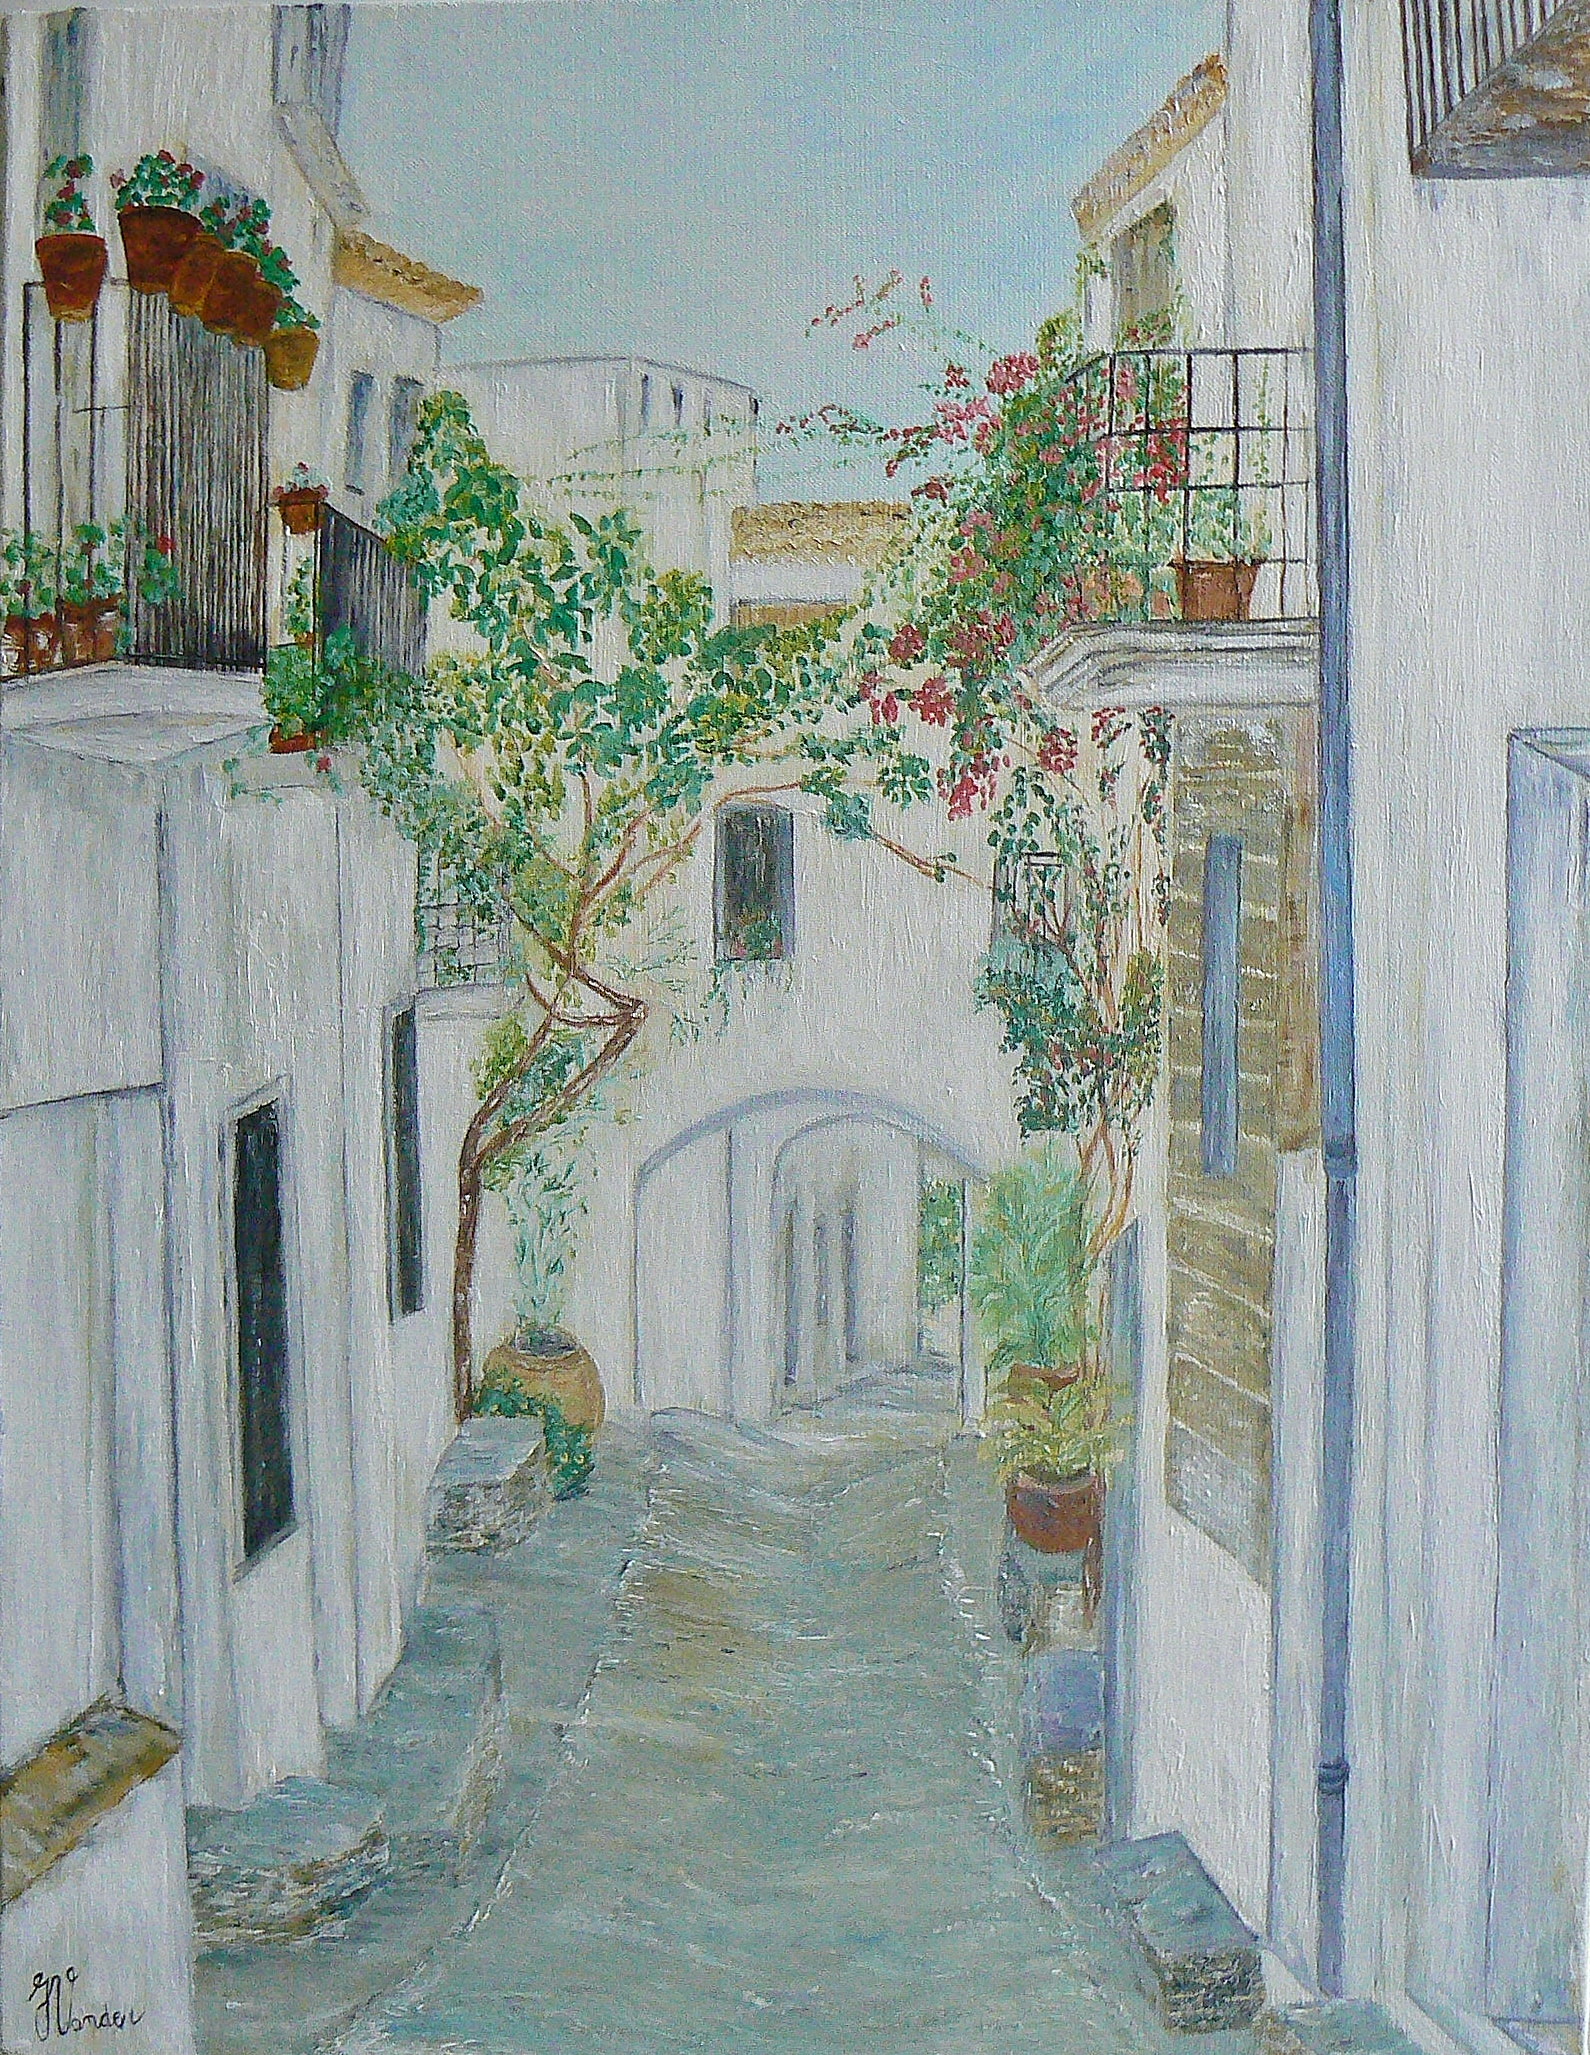 South Alley (50x65)